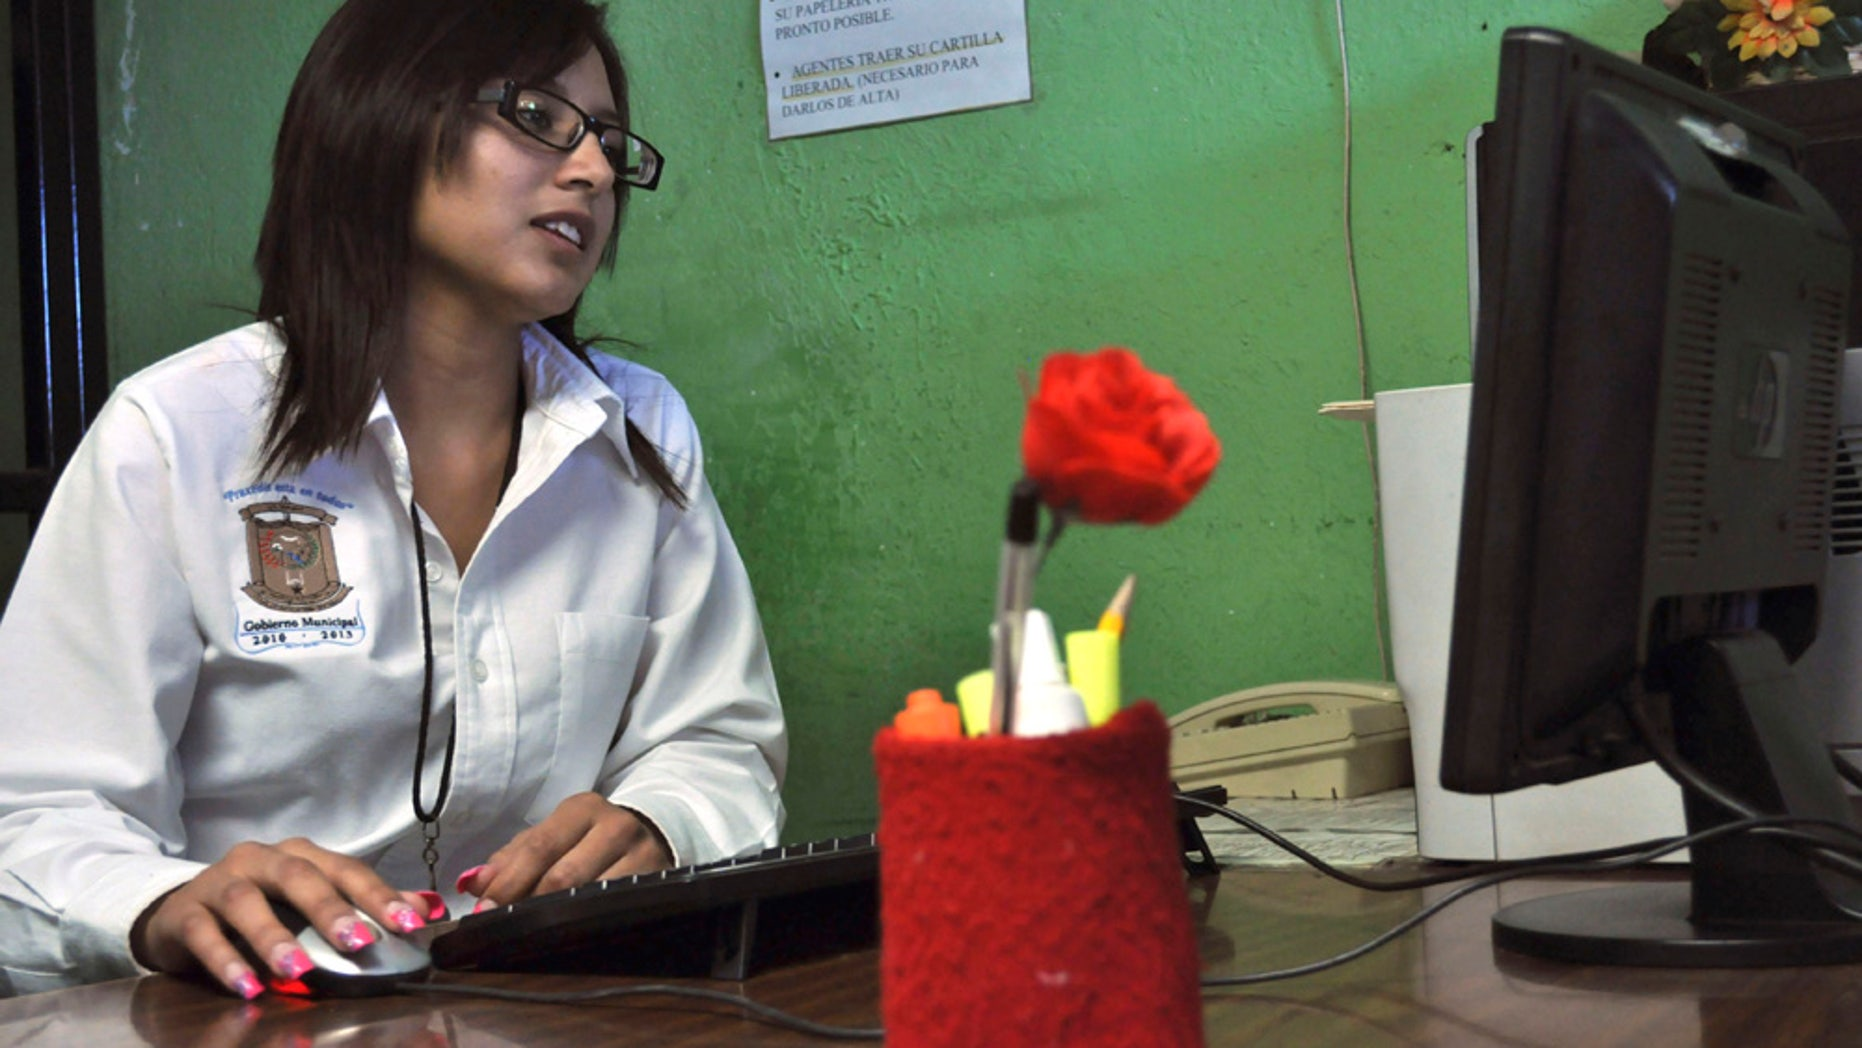 Twenty-year-old Marisol Valles Garcia sits at her desk after her swearing-in ceremony as the new police chief of the border town of Praxedis G. Guerrero, near Ciudad Juarez, Mexico, Wednesday, Oct. 20, 2010. Praxedis G. Guerrero was once a quiet farming town until two rival gangs, the Juarez and the Sinaloa drug cartels, began battling for the control of its single highway. (AP Photo/Raymundo Ruiz)